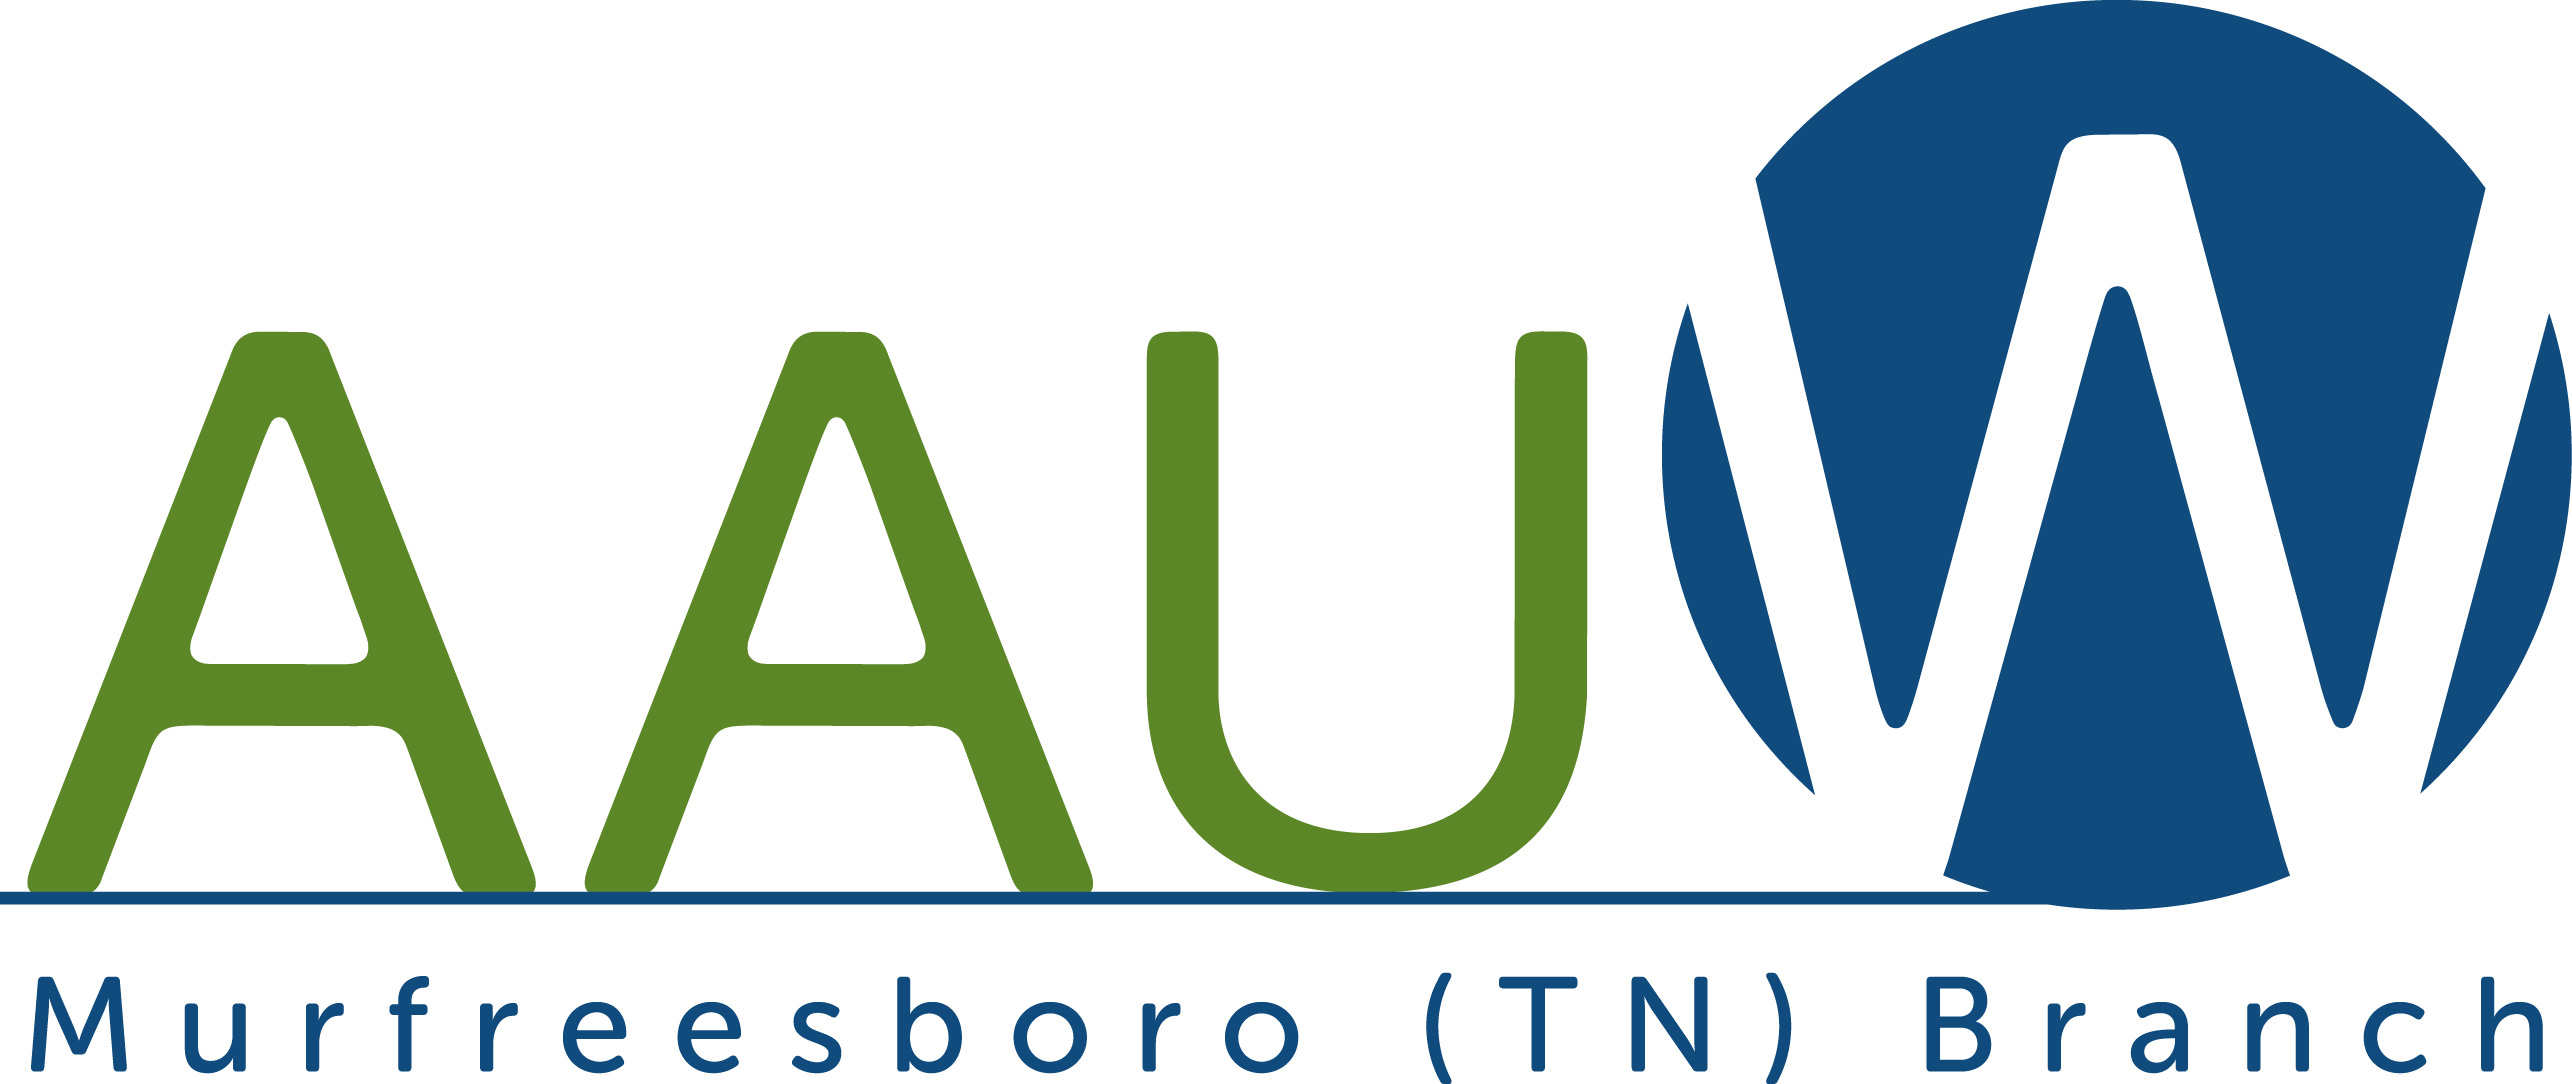 Murfreesboro Event: AAUW annual meeting features 'Buffalo Raffle' May 14